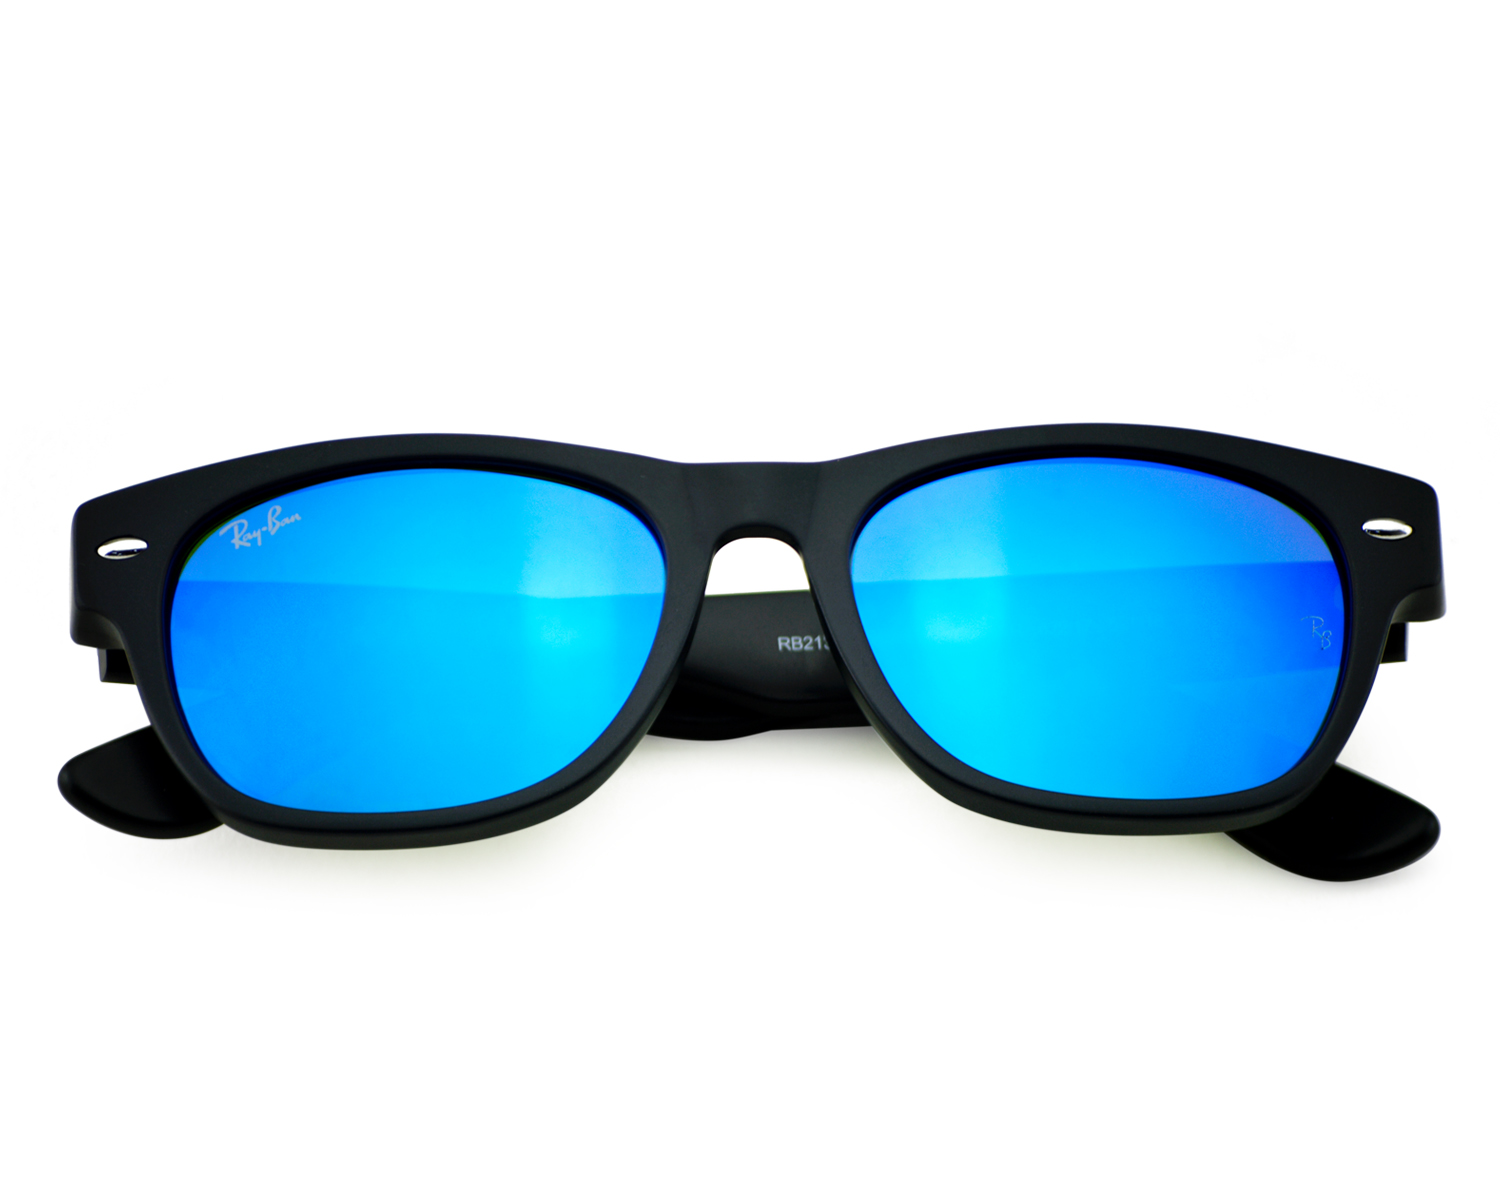 39b797a2e54 Ray-Ban RB2132 New Wayfarer Flash 622 17 Black  Blue Flash Lens Sunglasses  52mm